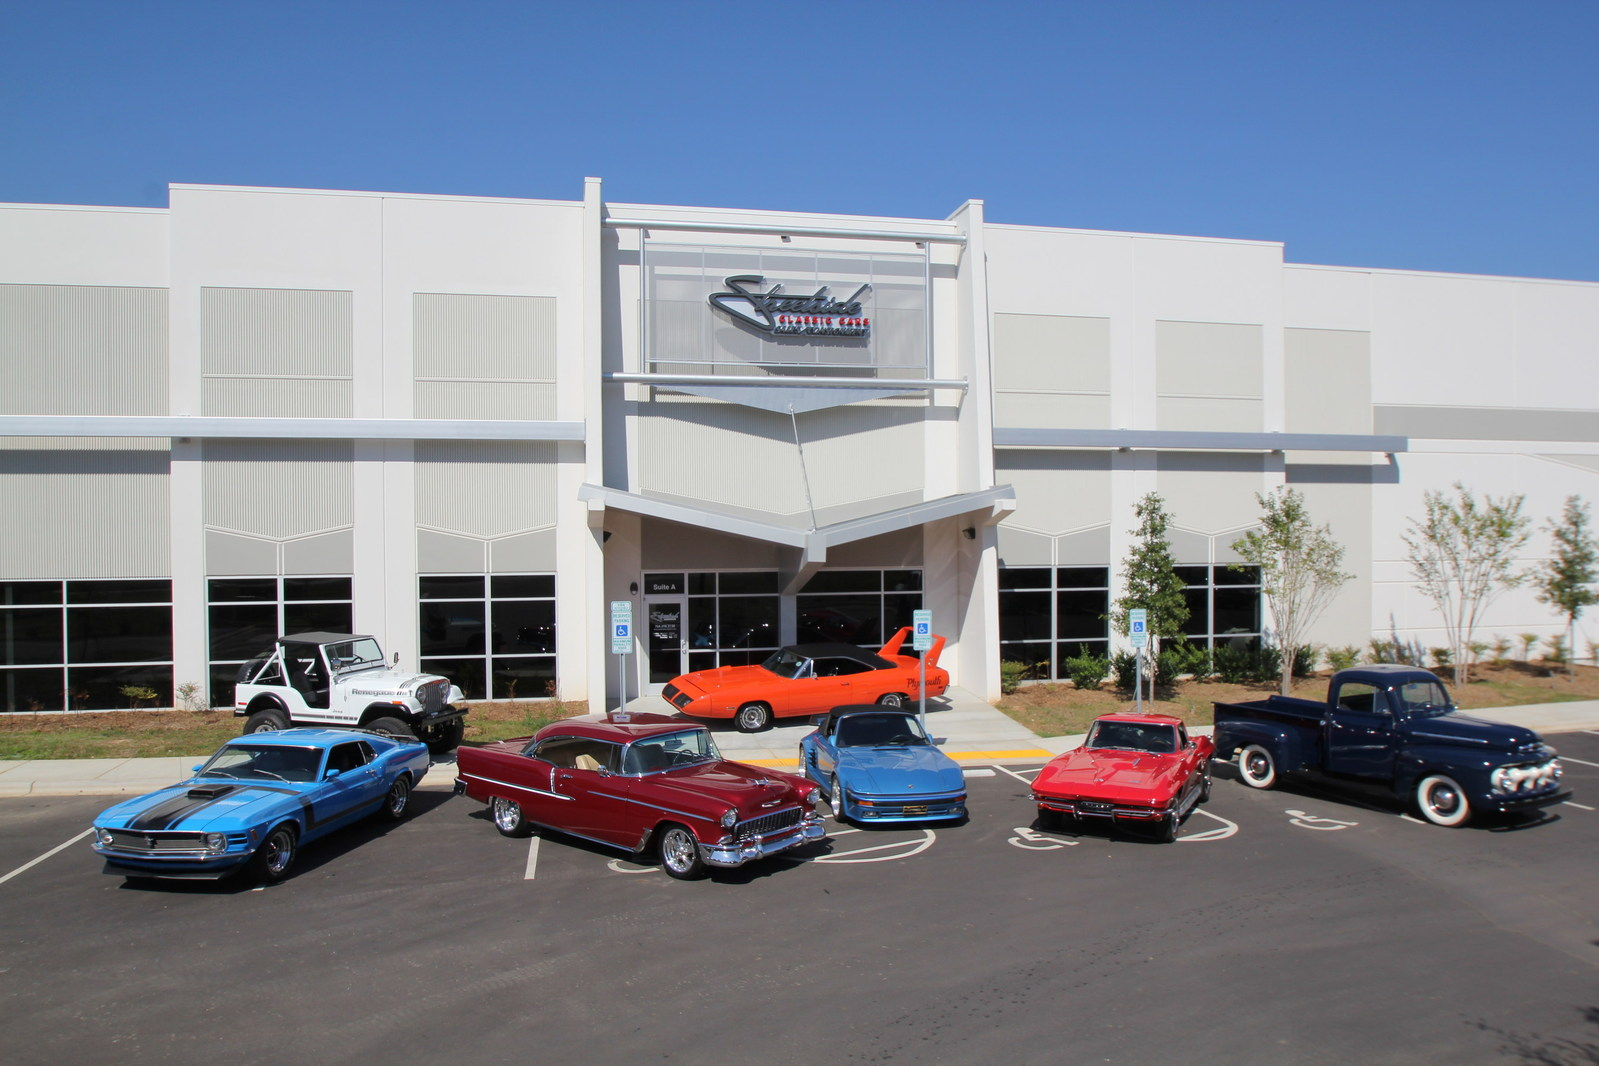 Streetside Classics The Nation 39 S Trusted Consignment Dealer Is Cruising Into Phoenix